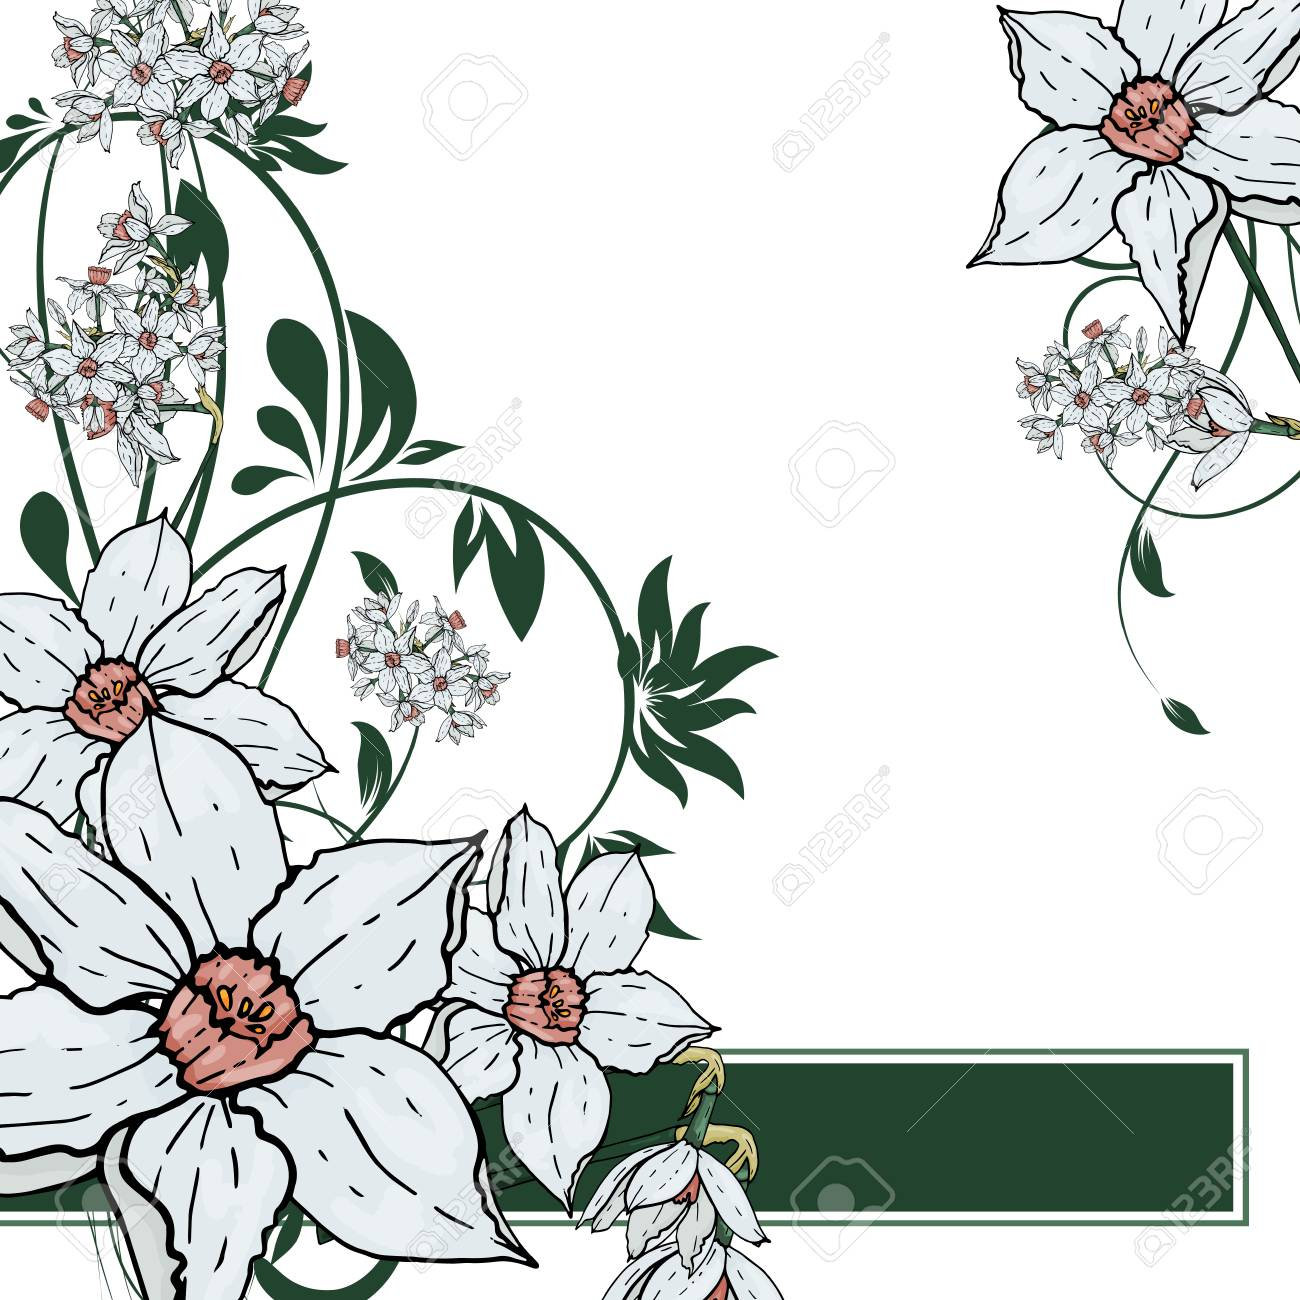 Abstract Vector Hand Drawing Narcissus Flower Background Flower Invitation Save The Date Card Template Abstract Elegant Pattern Ector Design